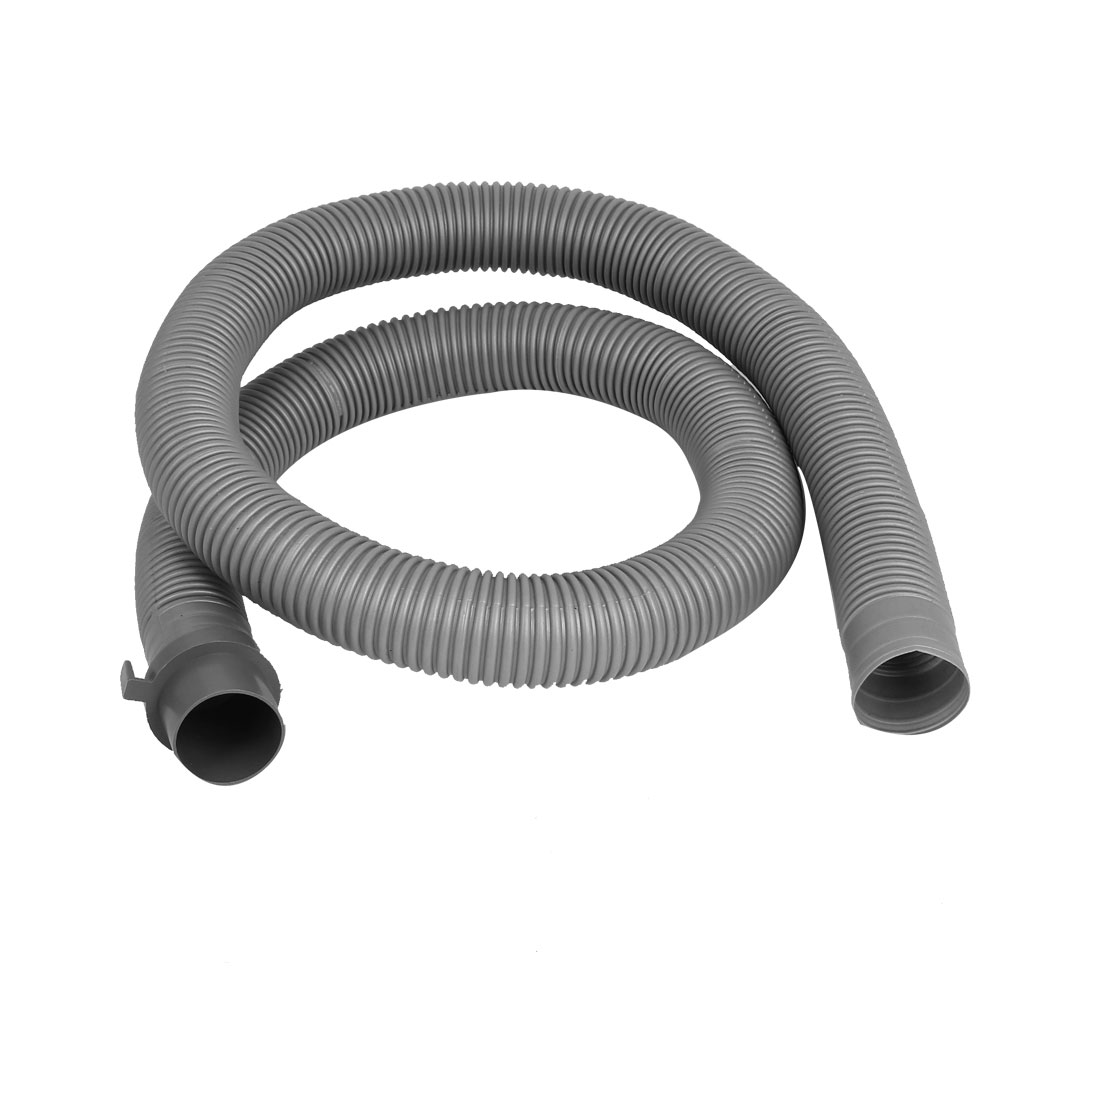 Washer Washing Machine Waste Water Drain Hose Pipe 1.2m 4Ft Gray